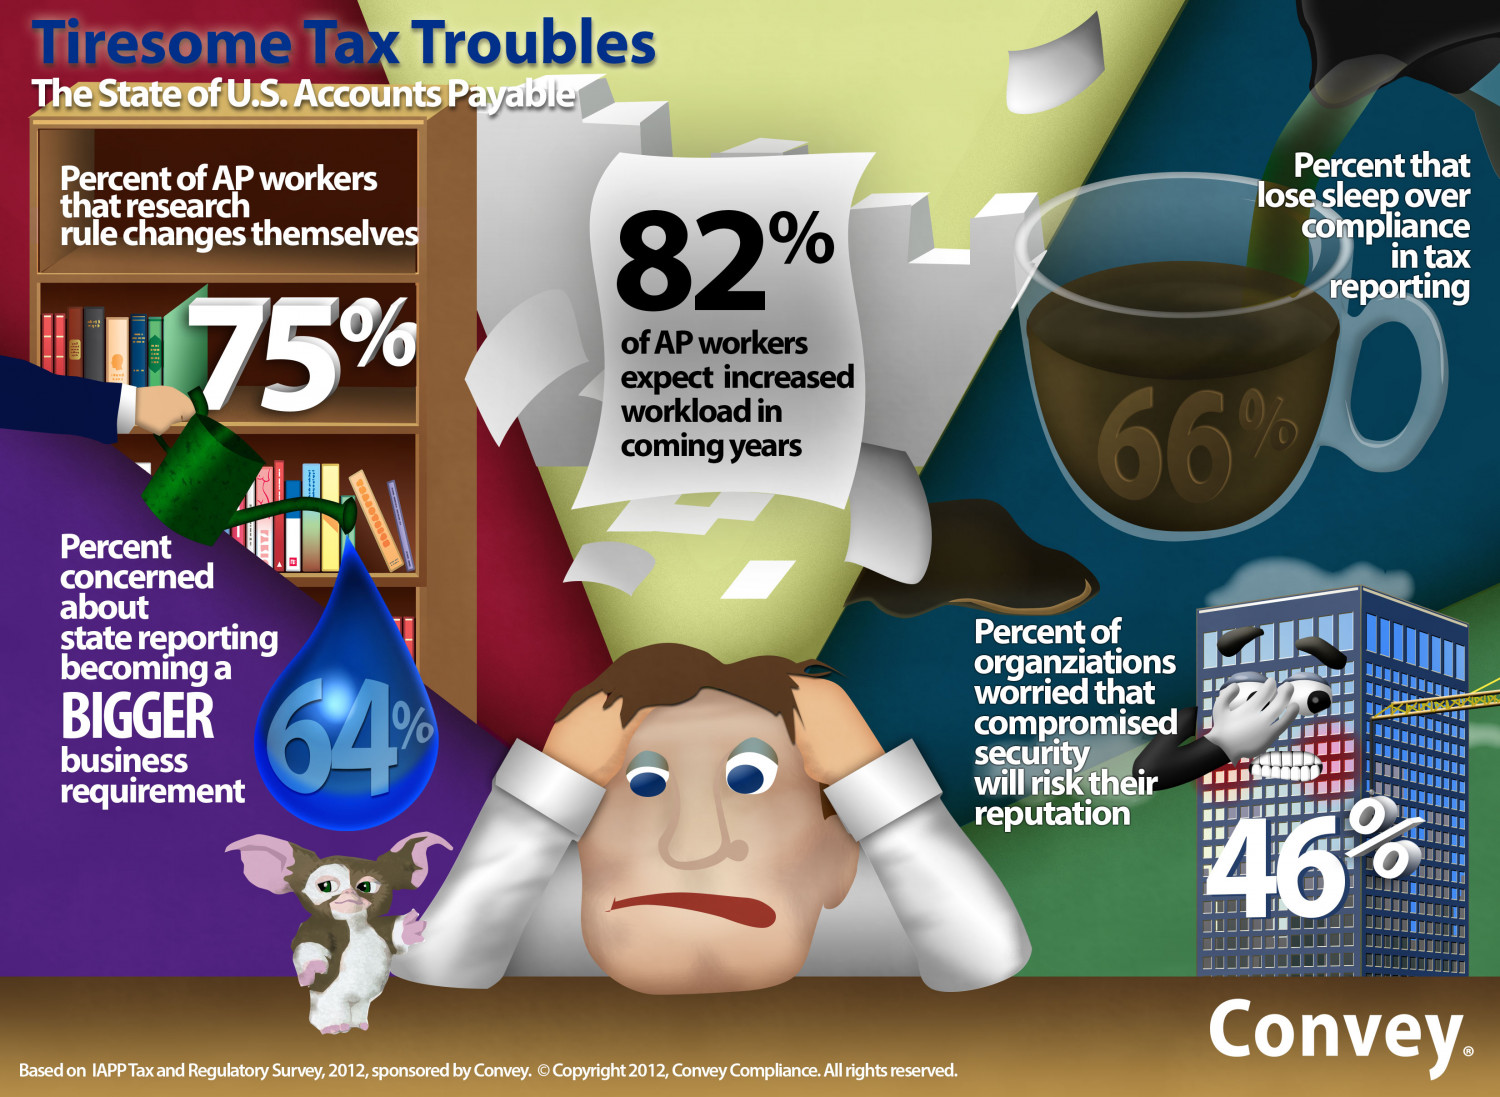 Tiresome Tax Troubles Infographic Infographic